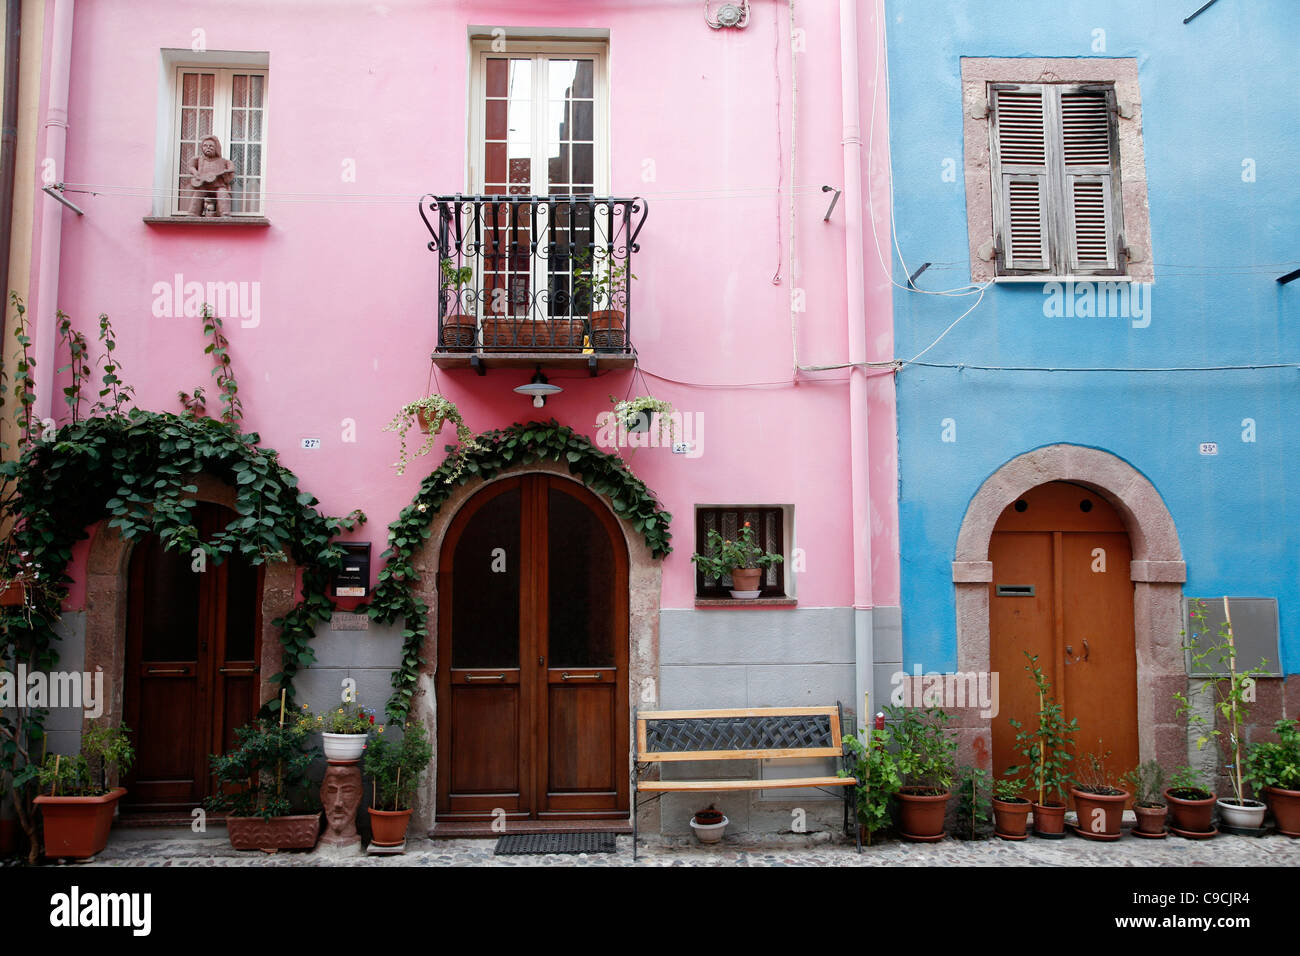 Detail of houses in the old city center, Bosa, Sardinia, Italy. - Stock Image